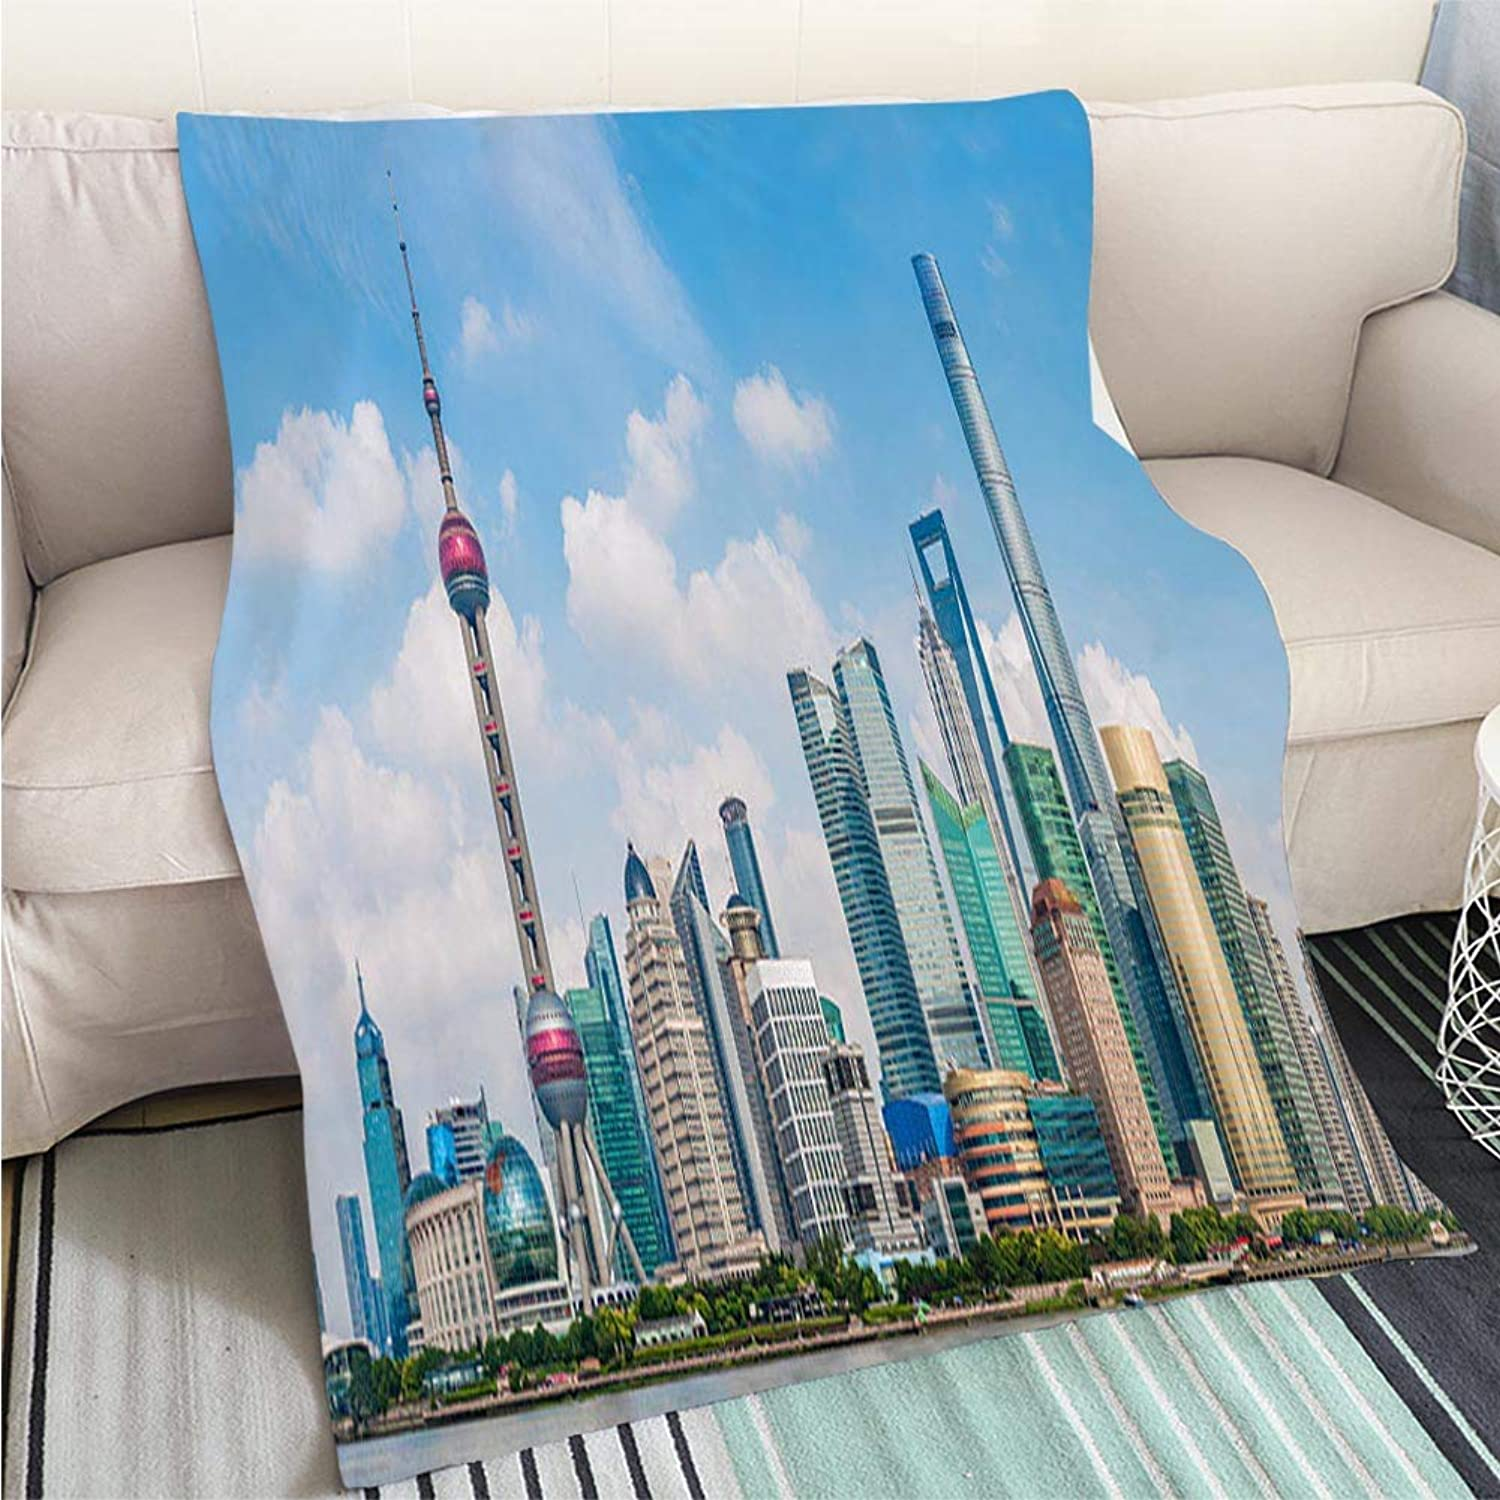 Super Soft Flannel Thicken Blanket Skyline View from Bund Waterfront on Pudong New Area Panoramic Perfect for Couch Sofa or Bed Cool Quilt